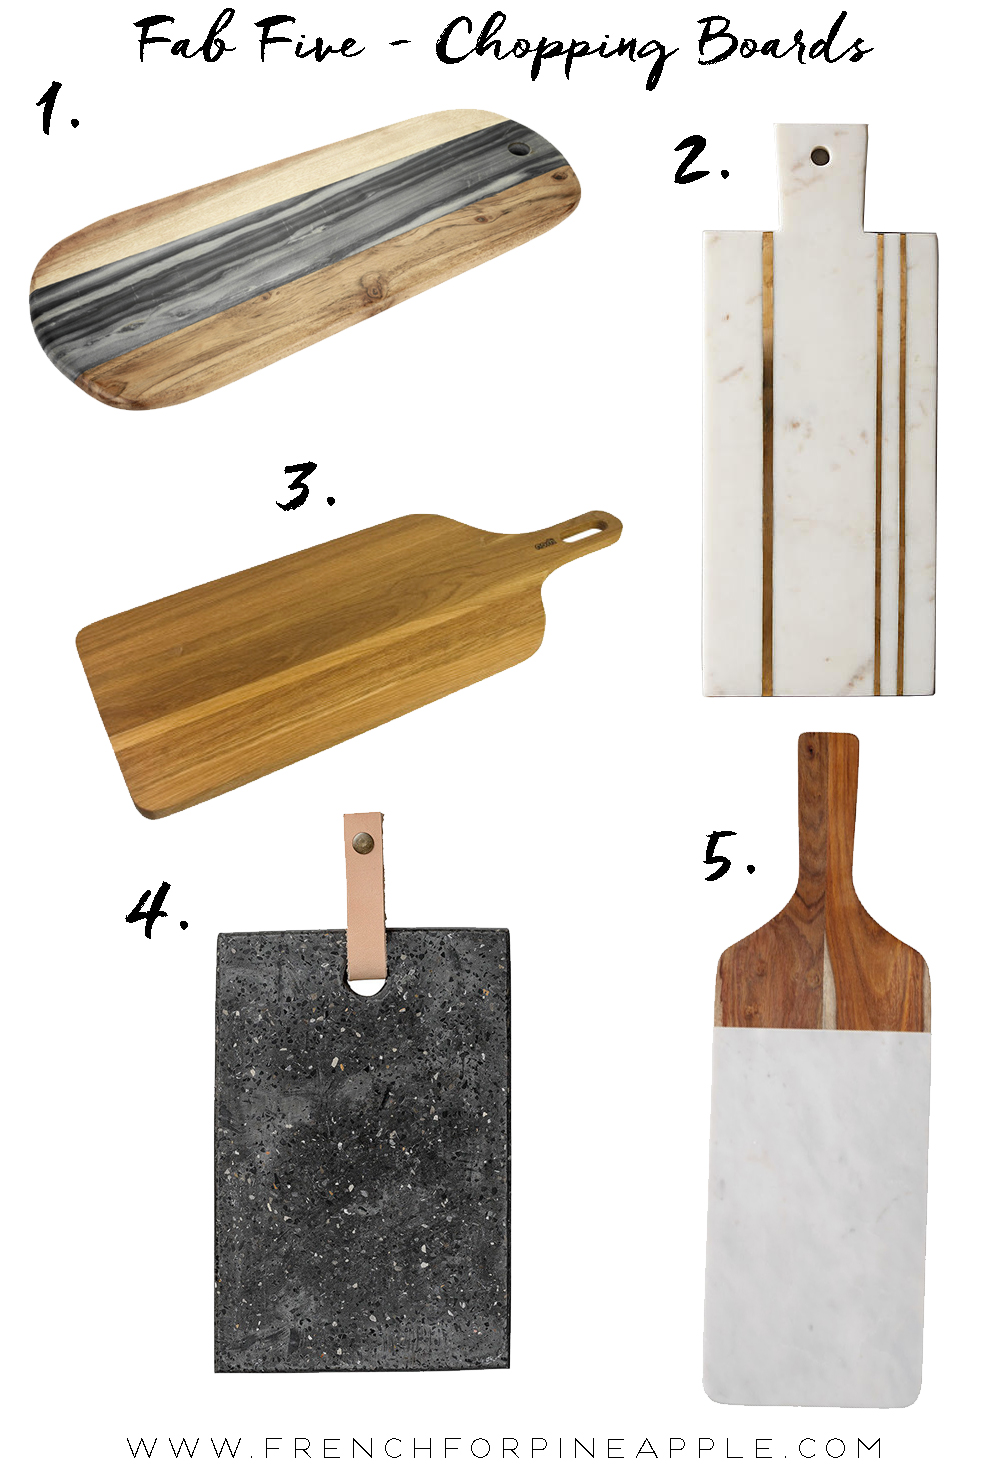 French For Pineapple Blog - Fab Five Chopping Boards